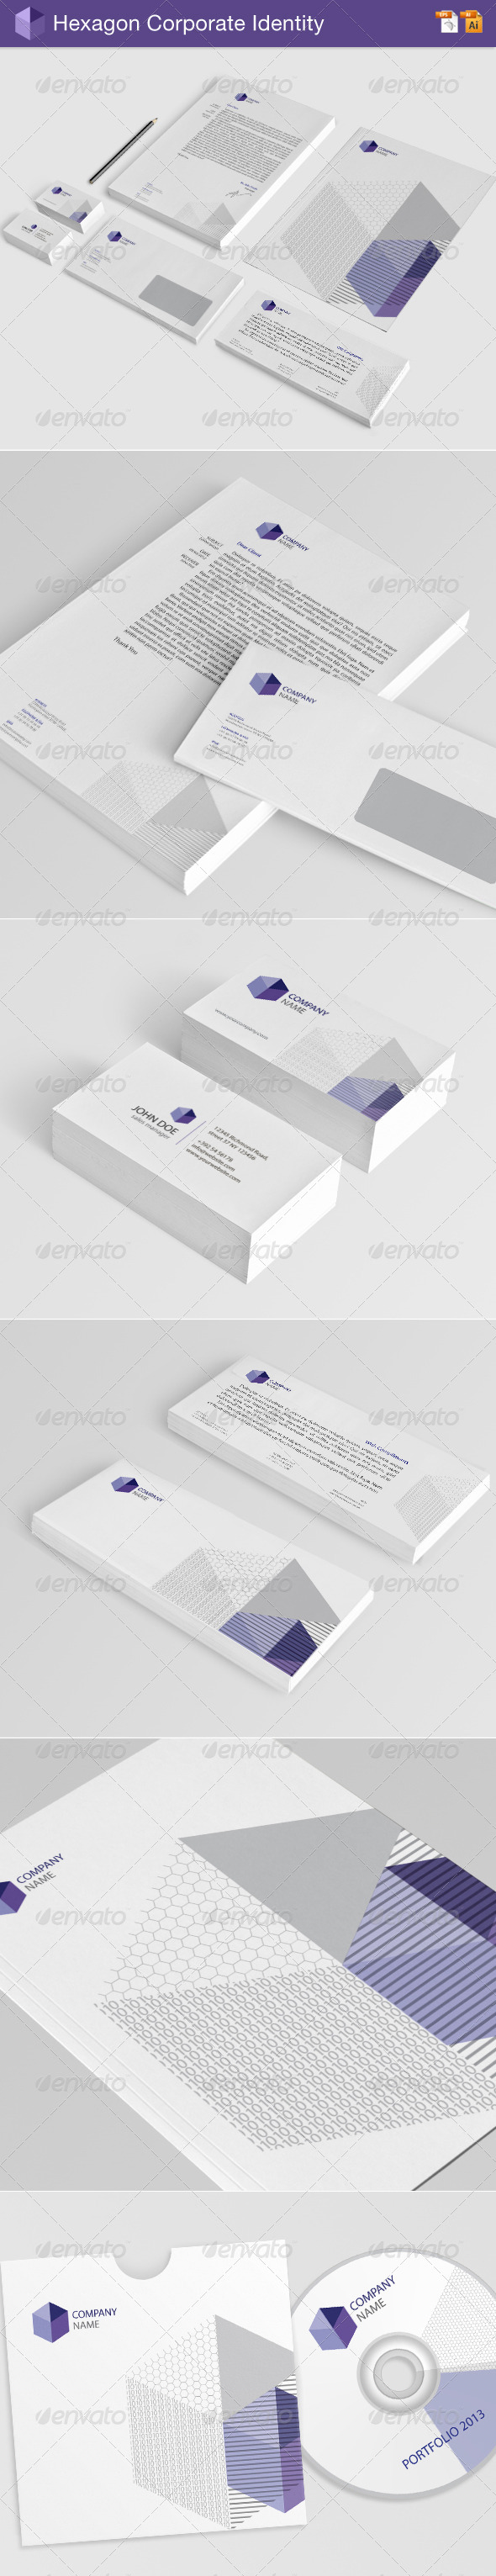 Hexagon Corporate Identity - Stationery Print Templates